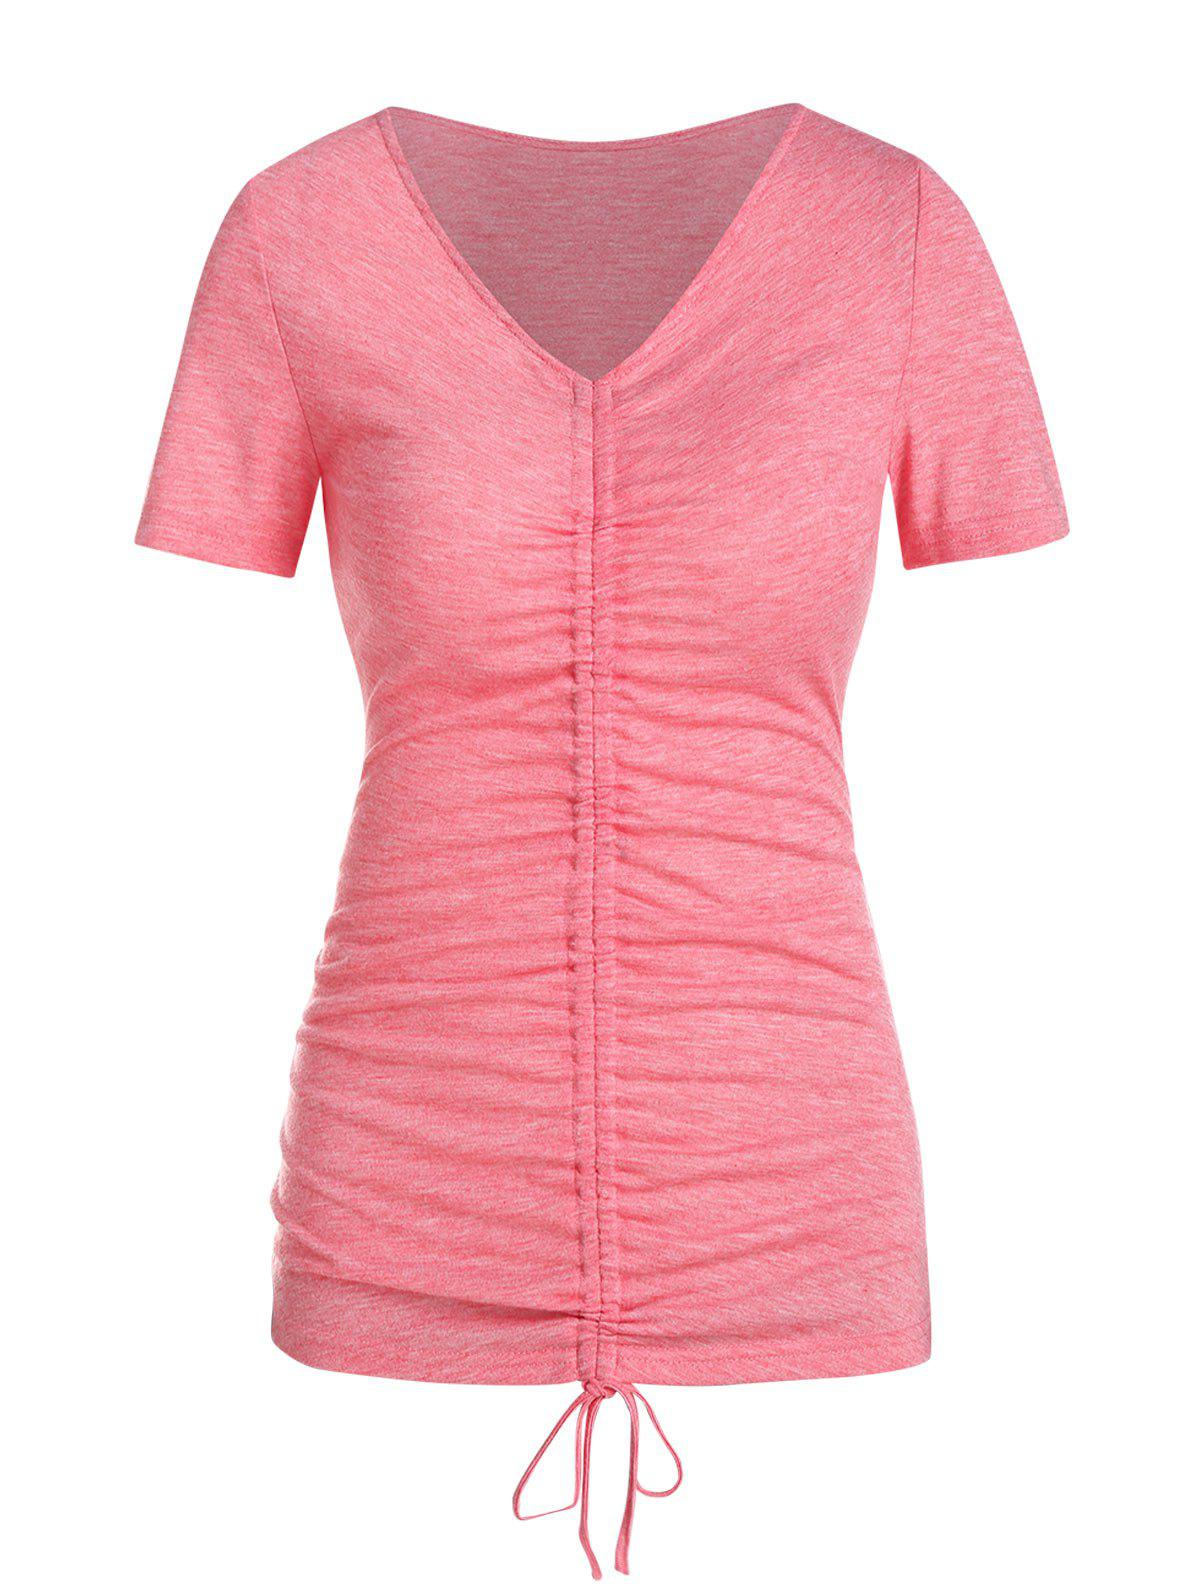 V Neck Cinched Heathered T-shirt - PINK 3XL